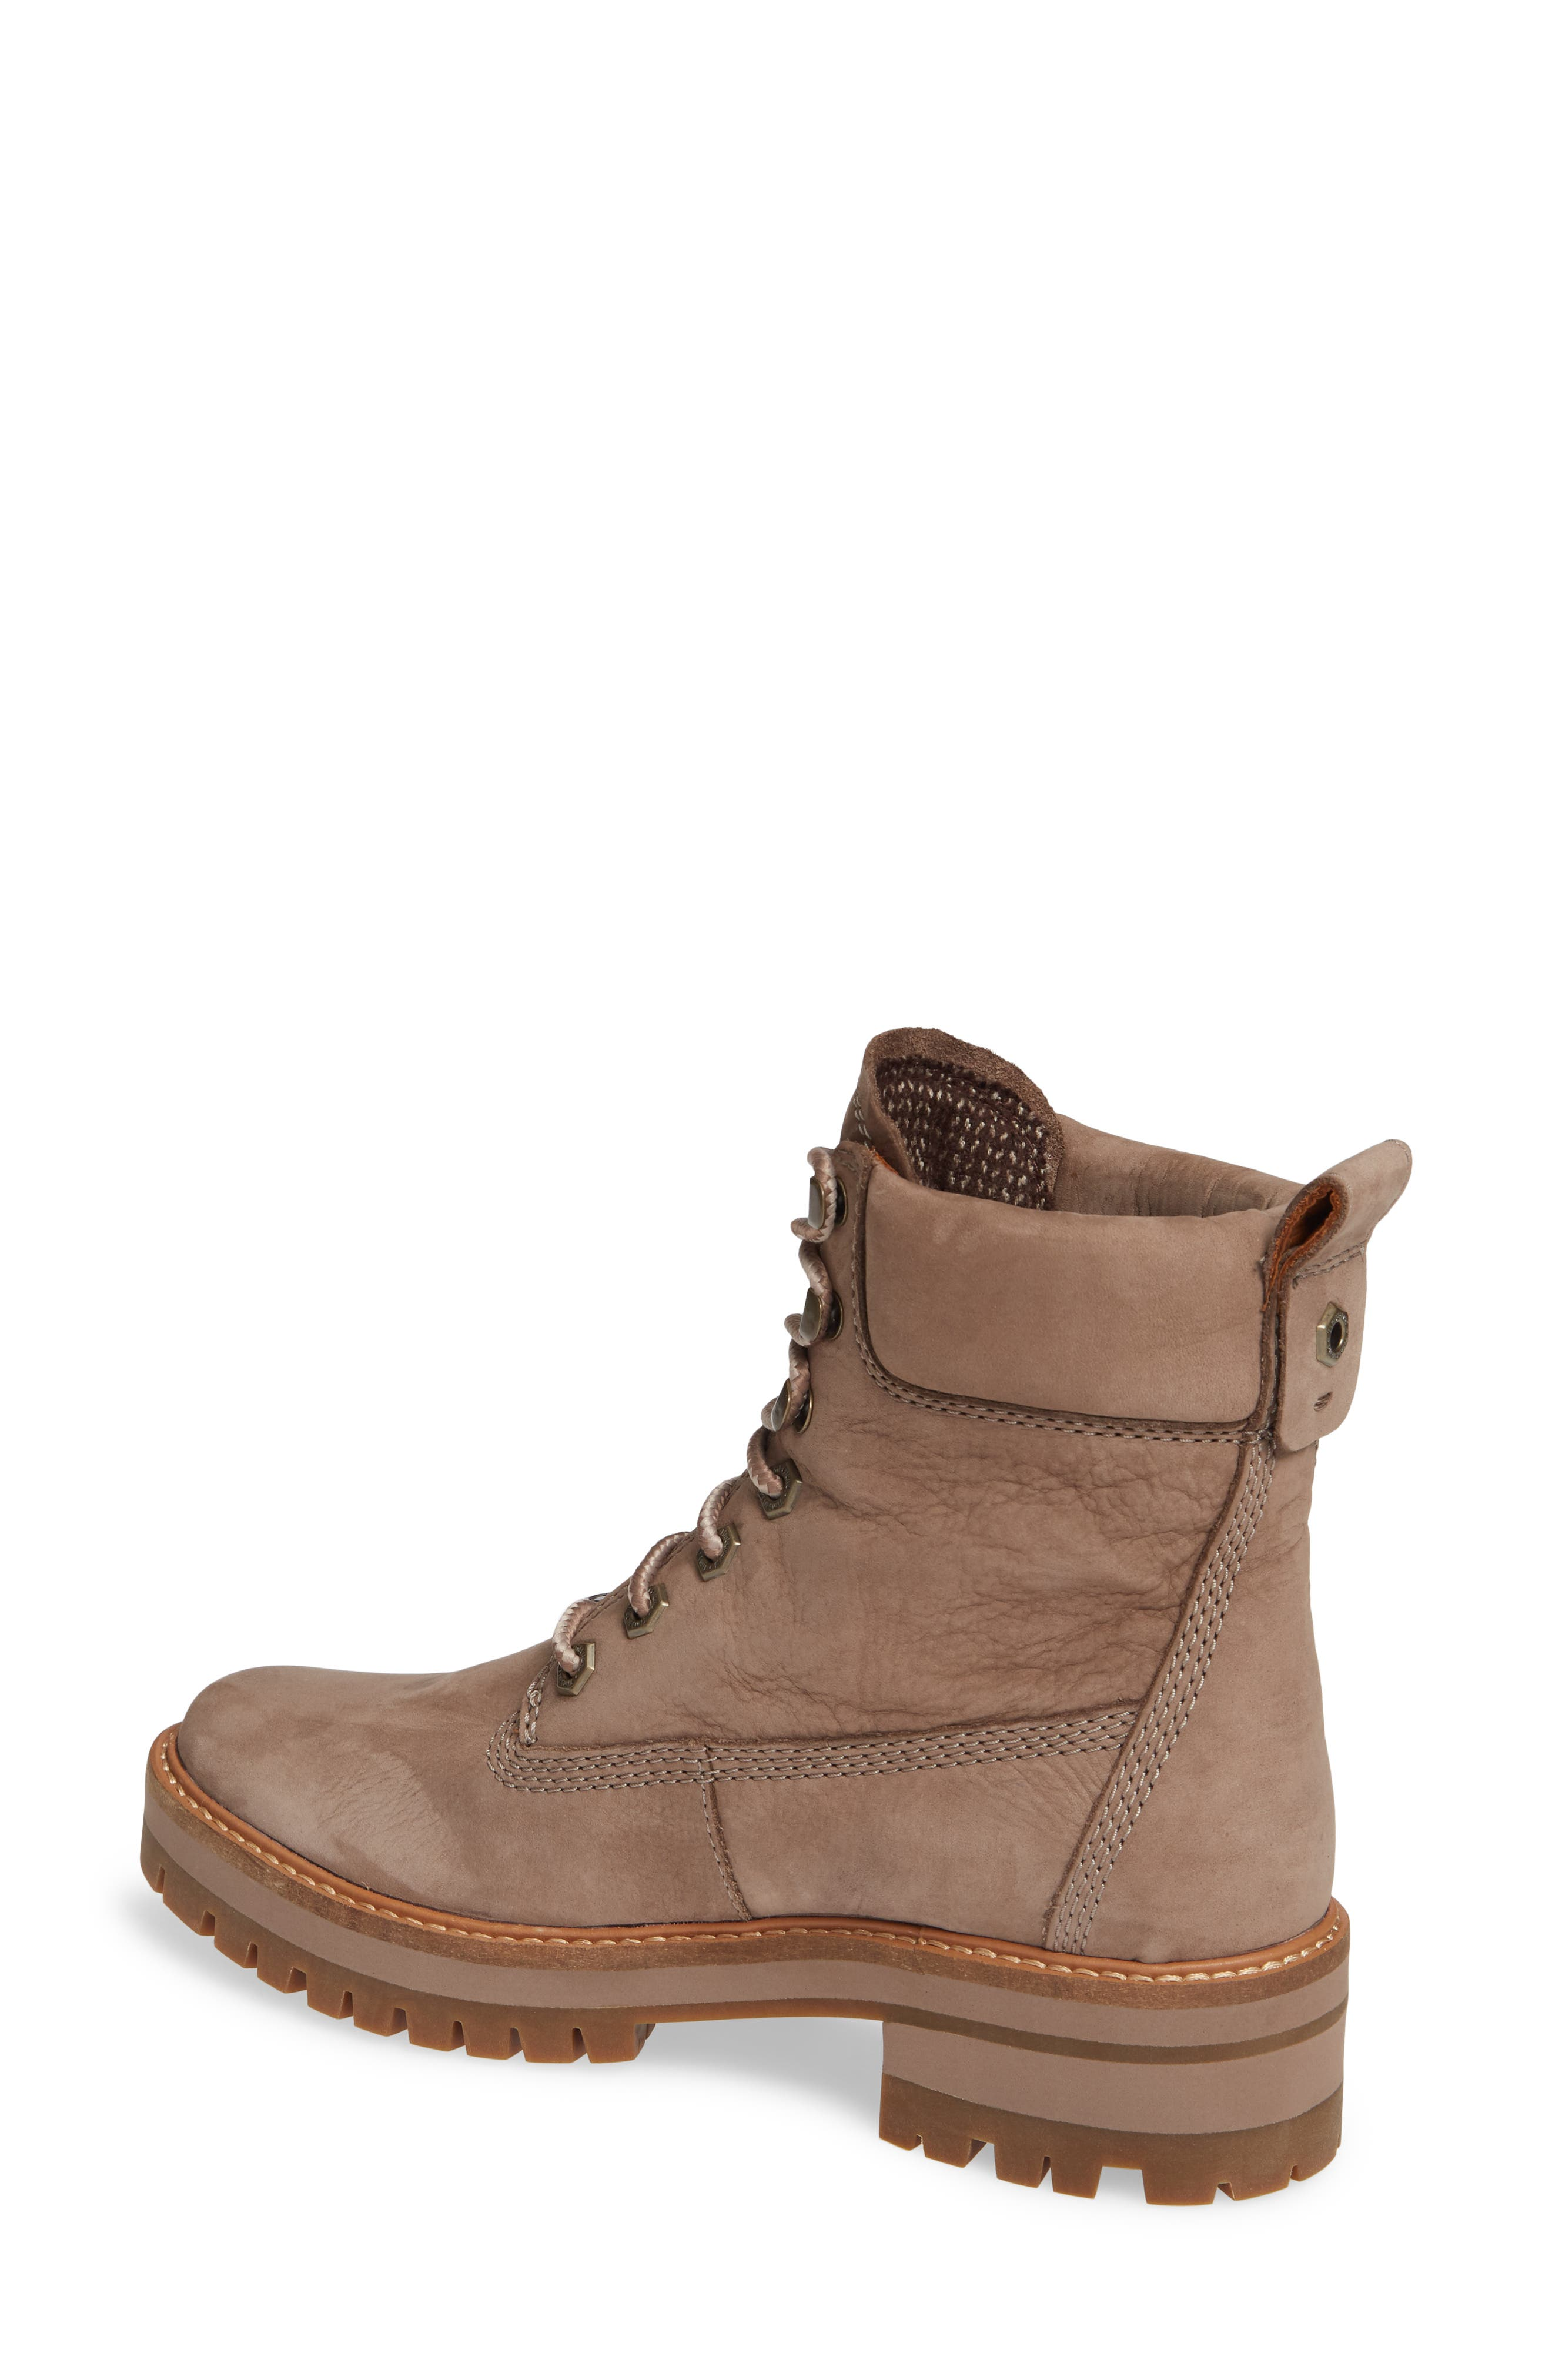 Courmayeur Valley Water Resistant Hiking Boot,                             Alternate thumbnail 2, color,                             TAUPE GREY NUBUCK